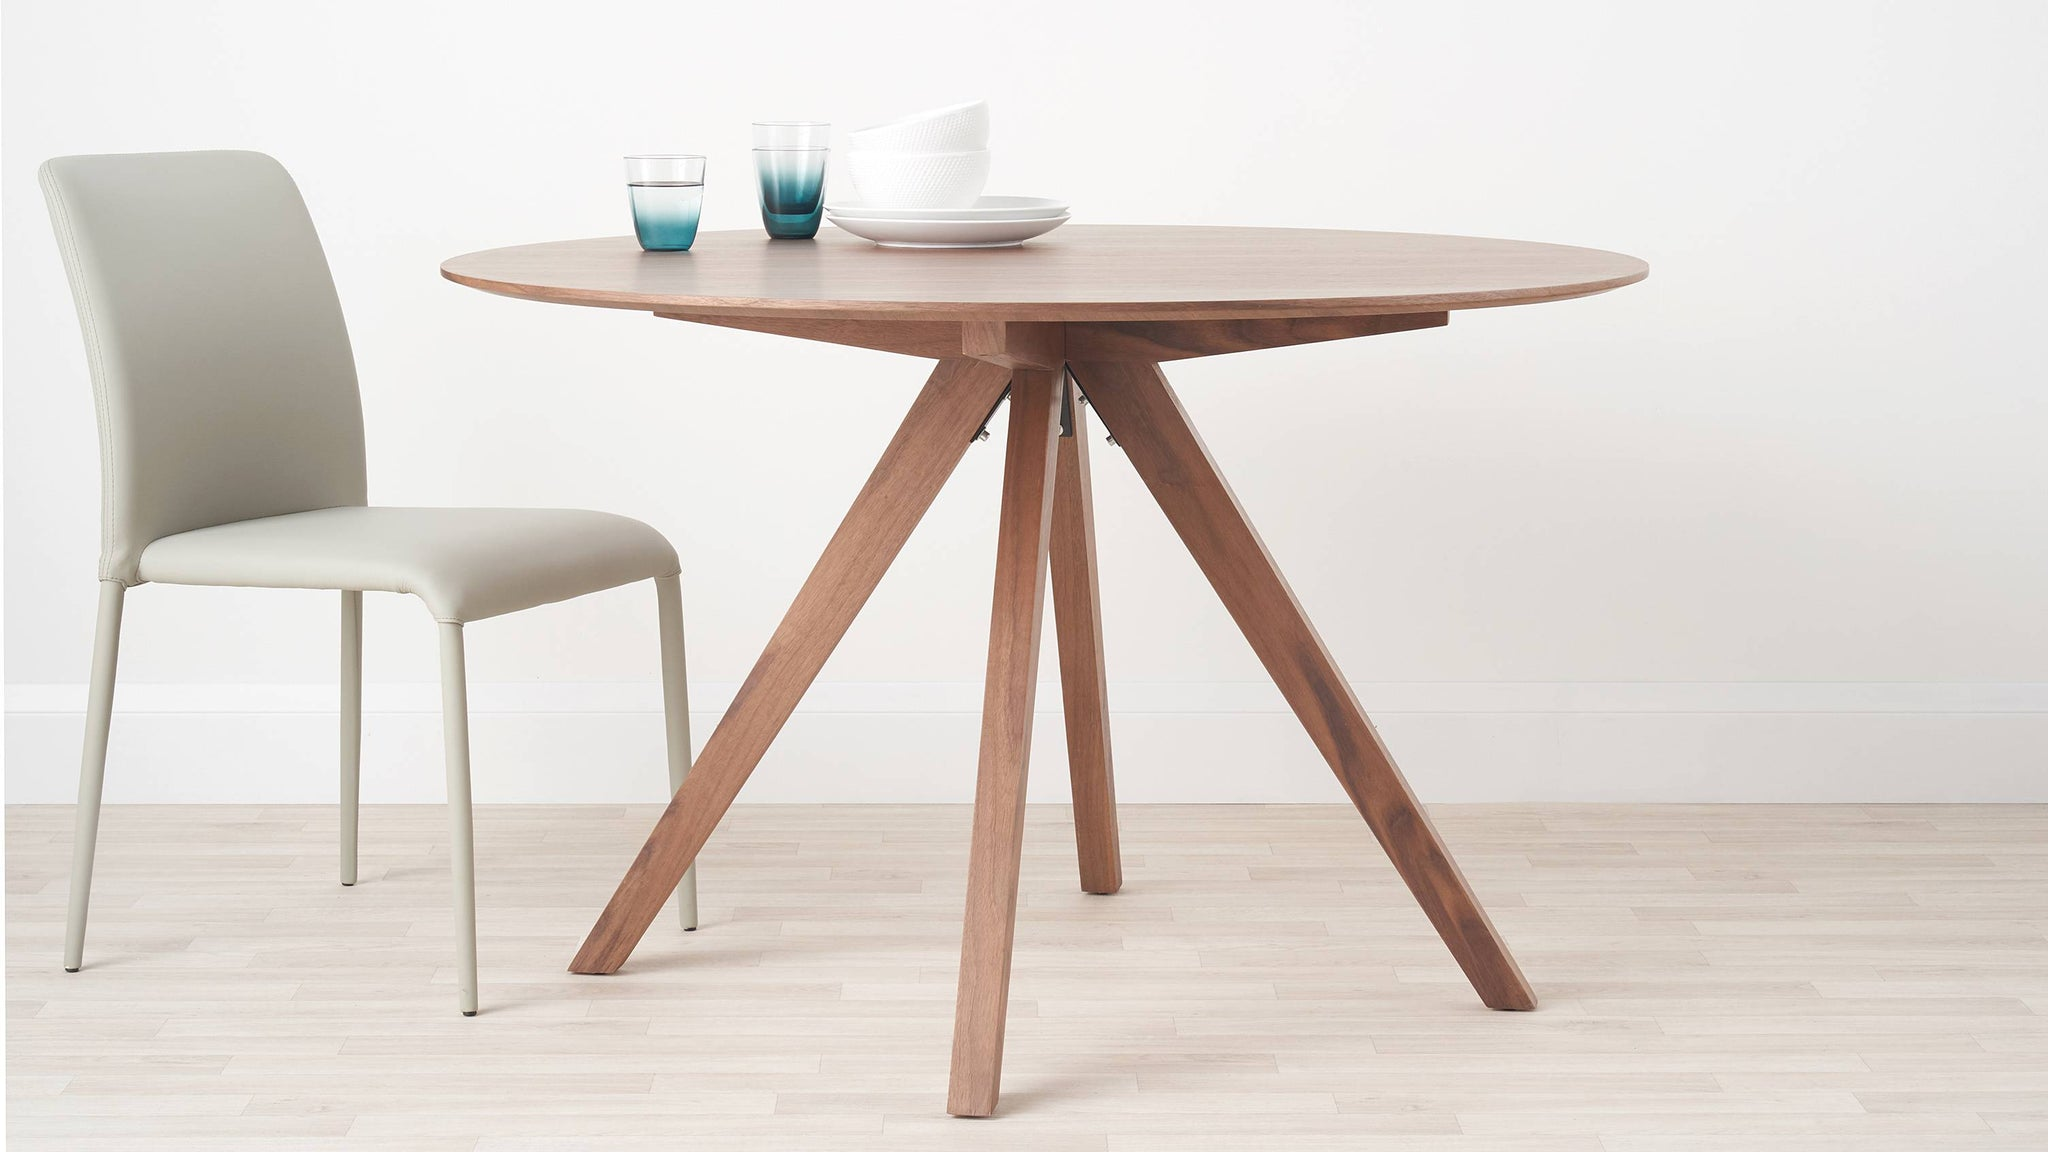 Wooden round table with trestle leg